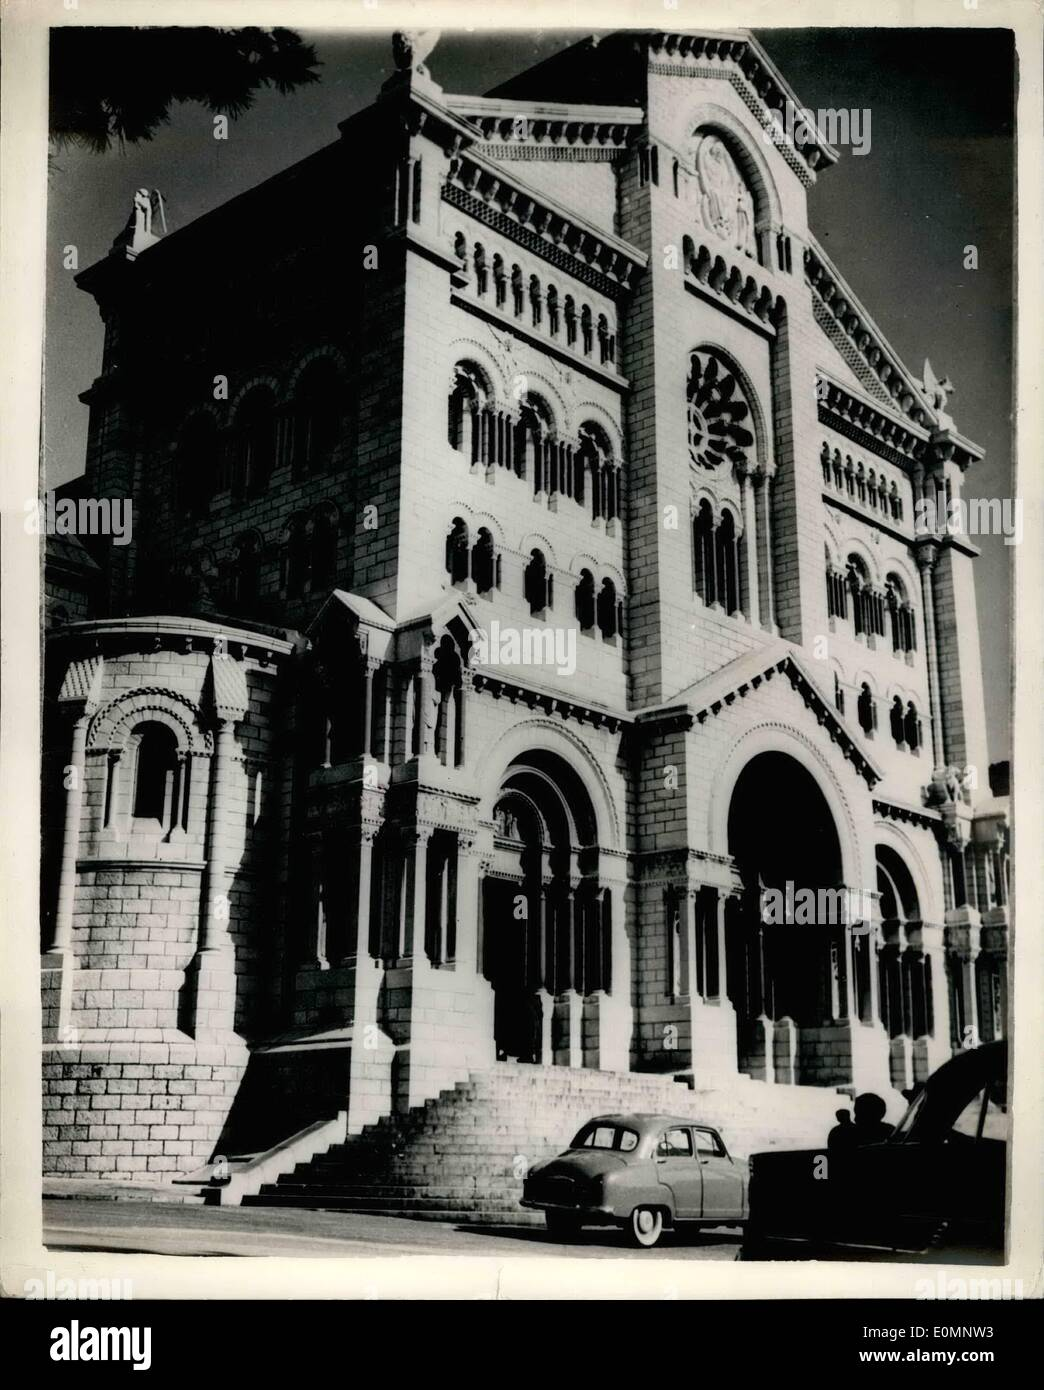 Apr. 04, 1956 - Monaco prepares for the Royal Wedding. View of the Cathedral: Photo shows view of Monaco Cathedral where the wedding of Prince Ranier and Grace Kelly will be held on April 18th. - Stock Image